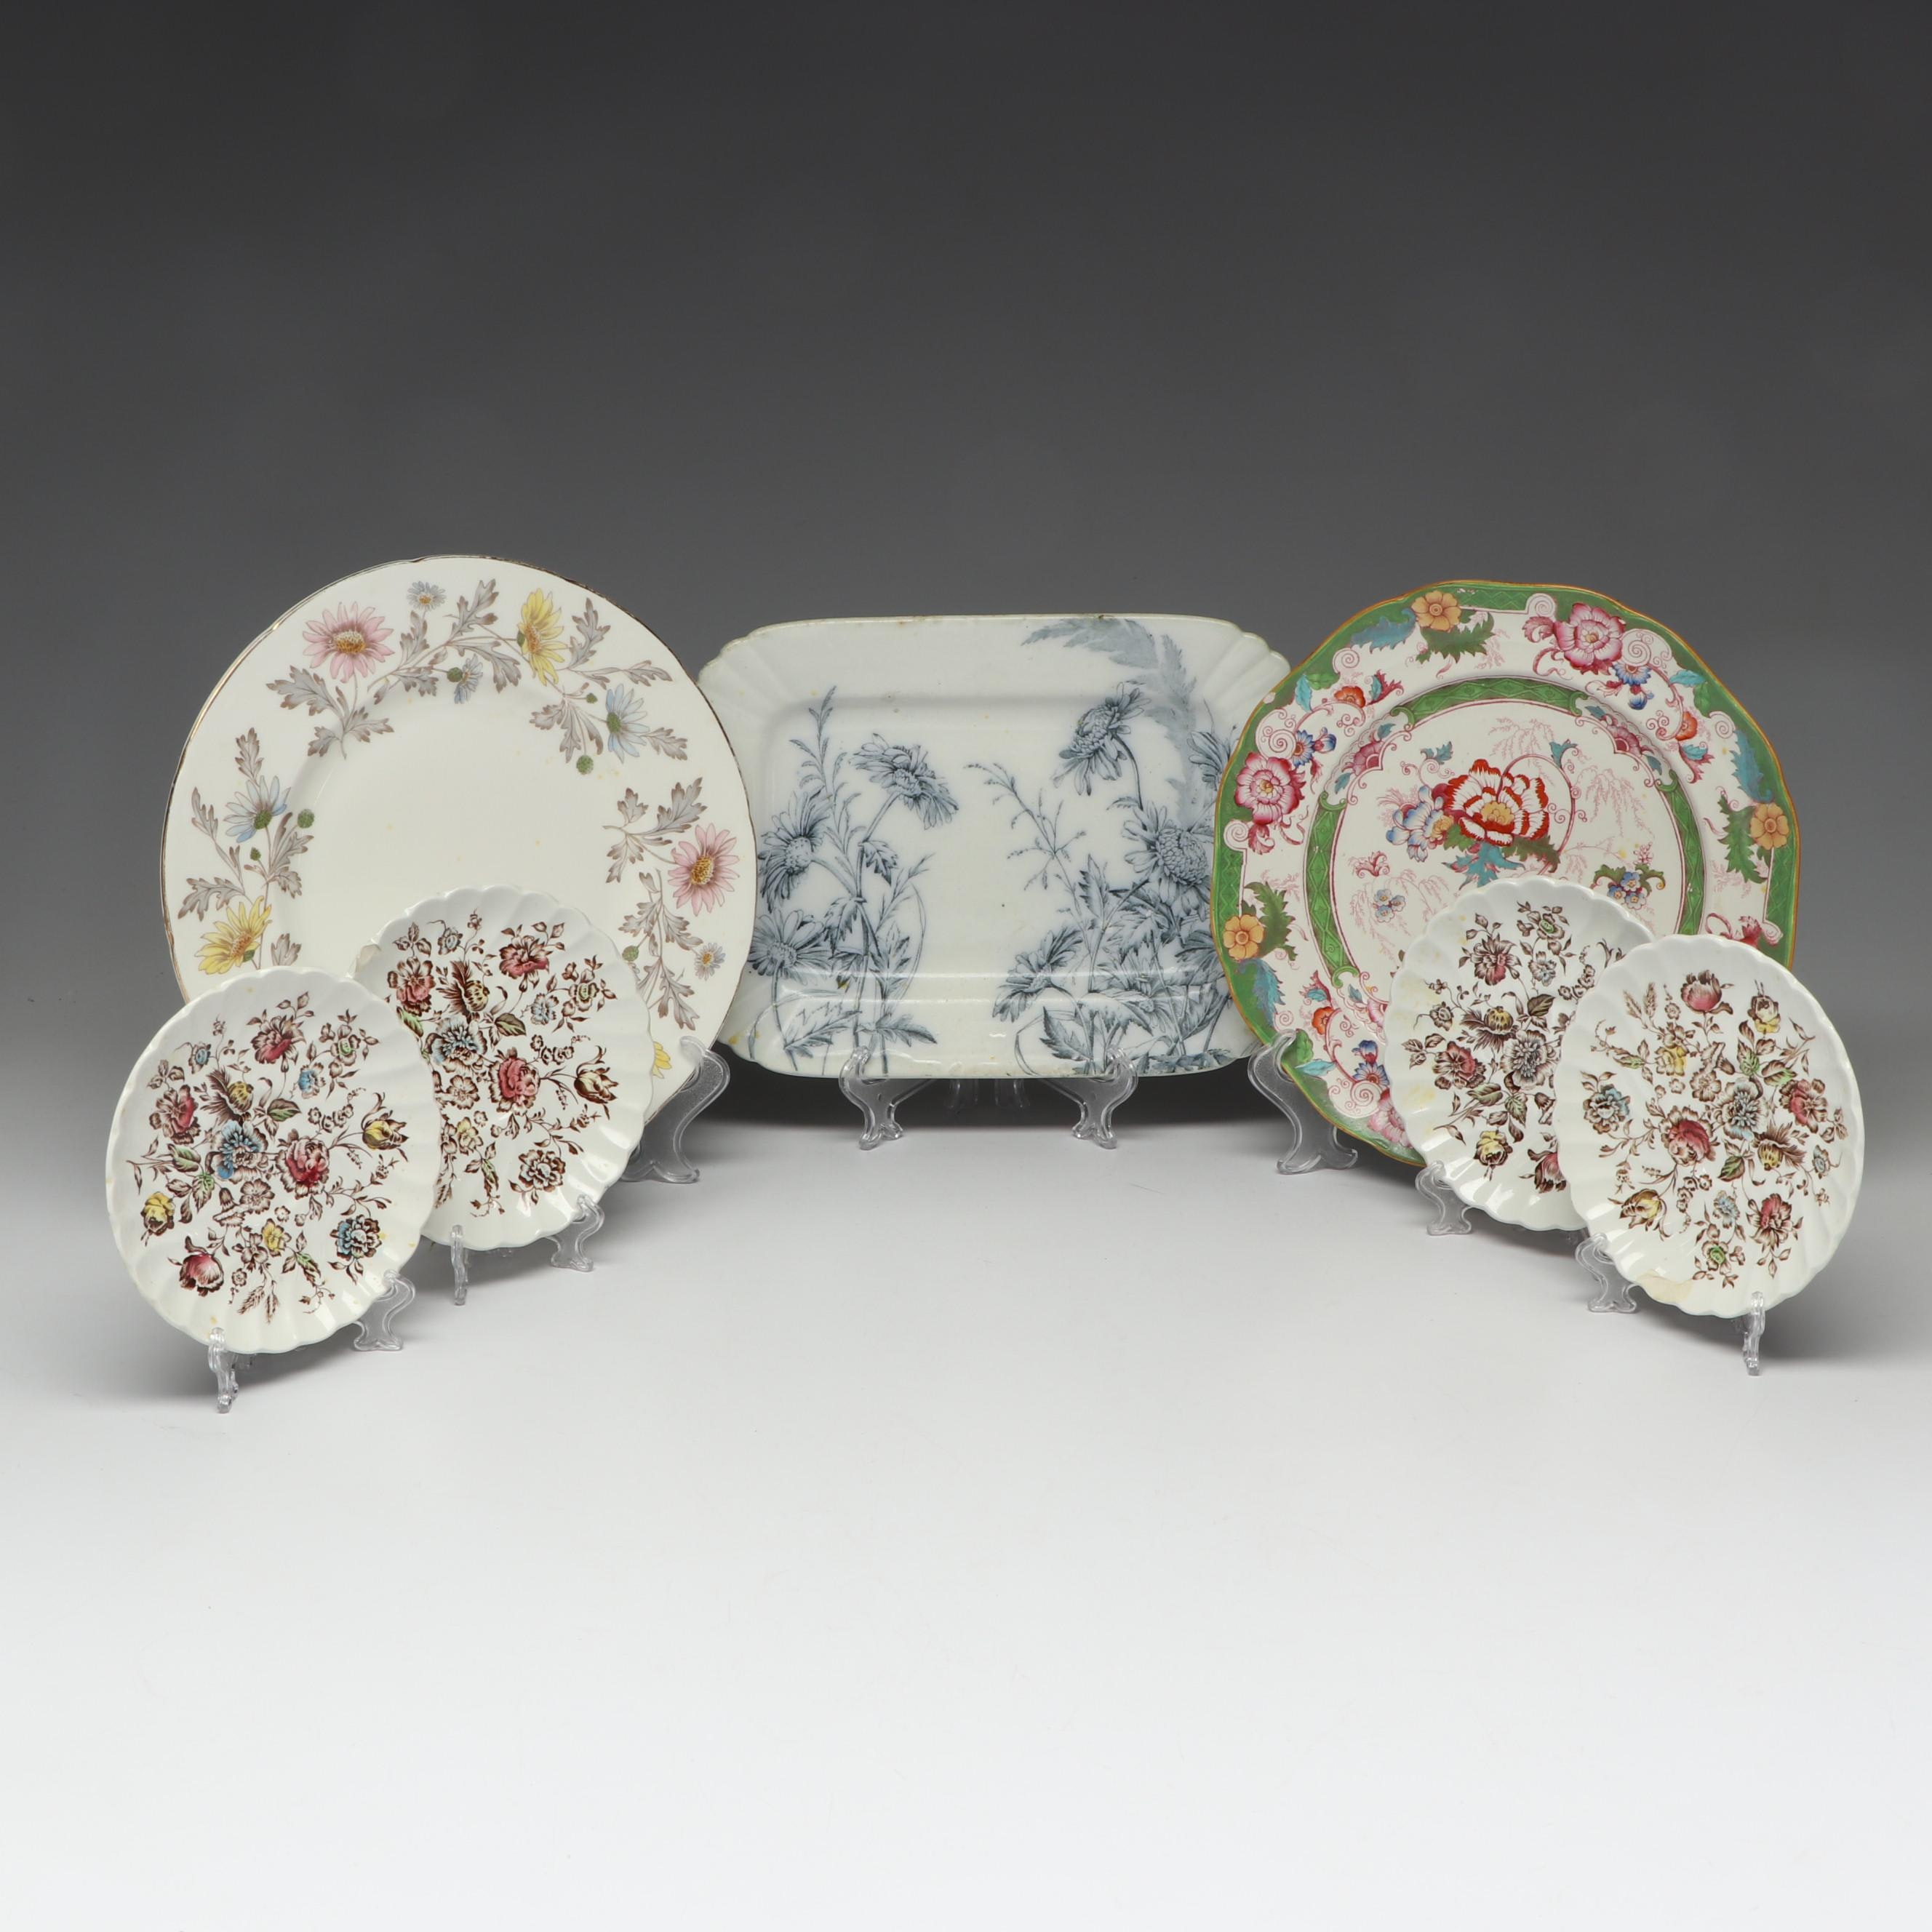 Antique and Vintage English Plates with Johnson Bros and More